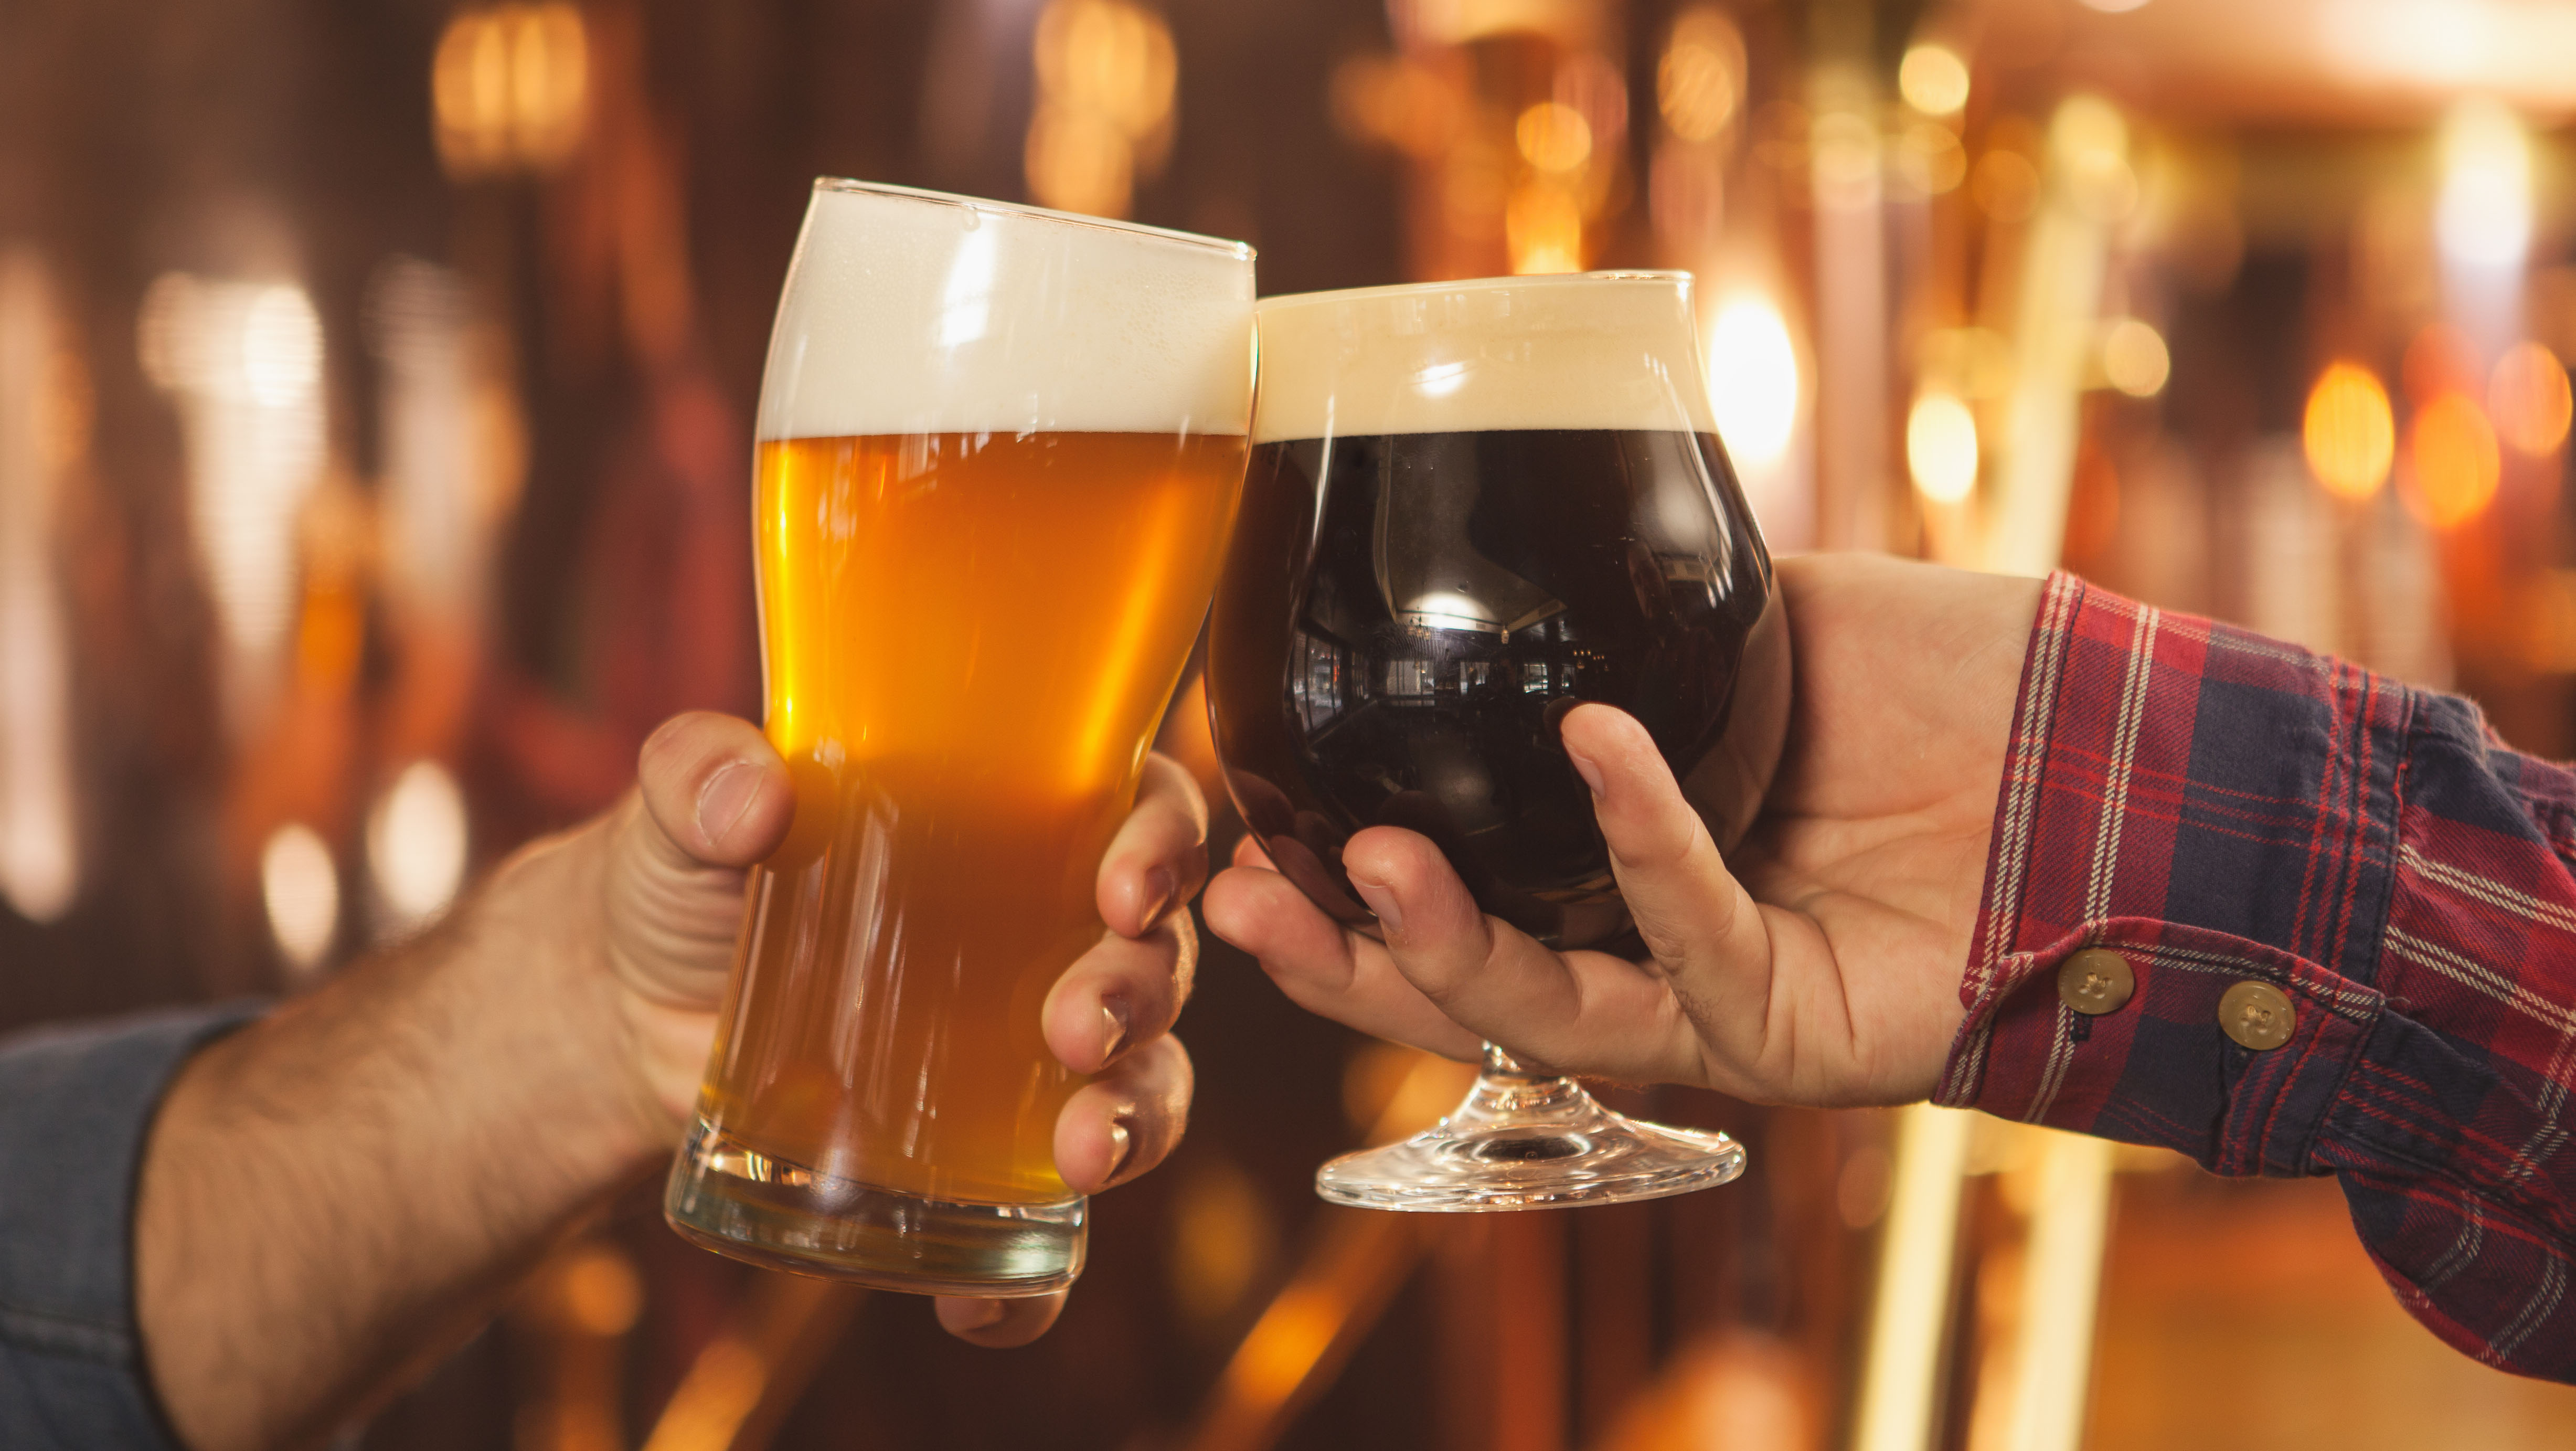 Cropped close up of two men clinking beer glasses together, celebrating at the beer pub. Professional brewers toasting with their beer glasses.